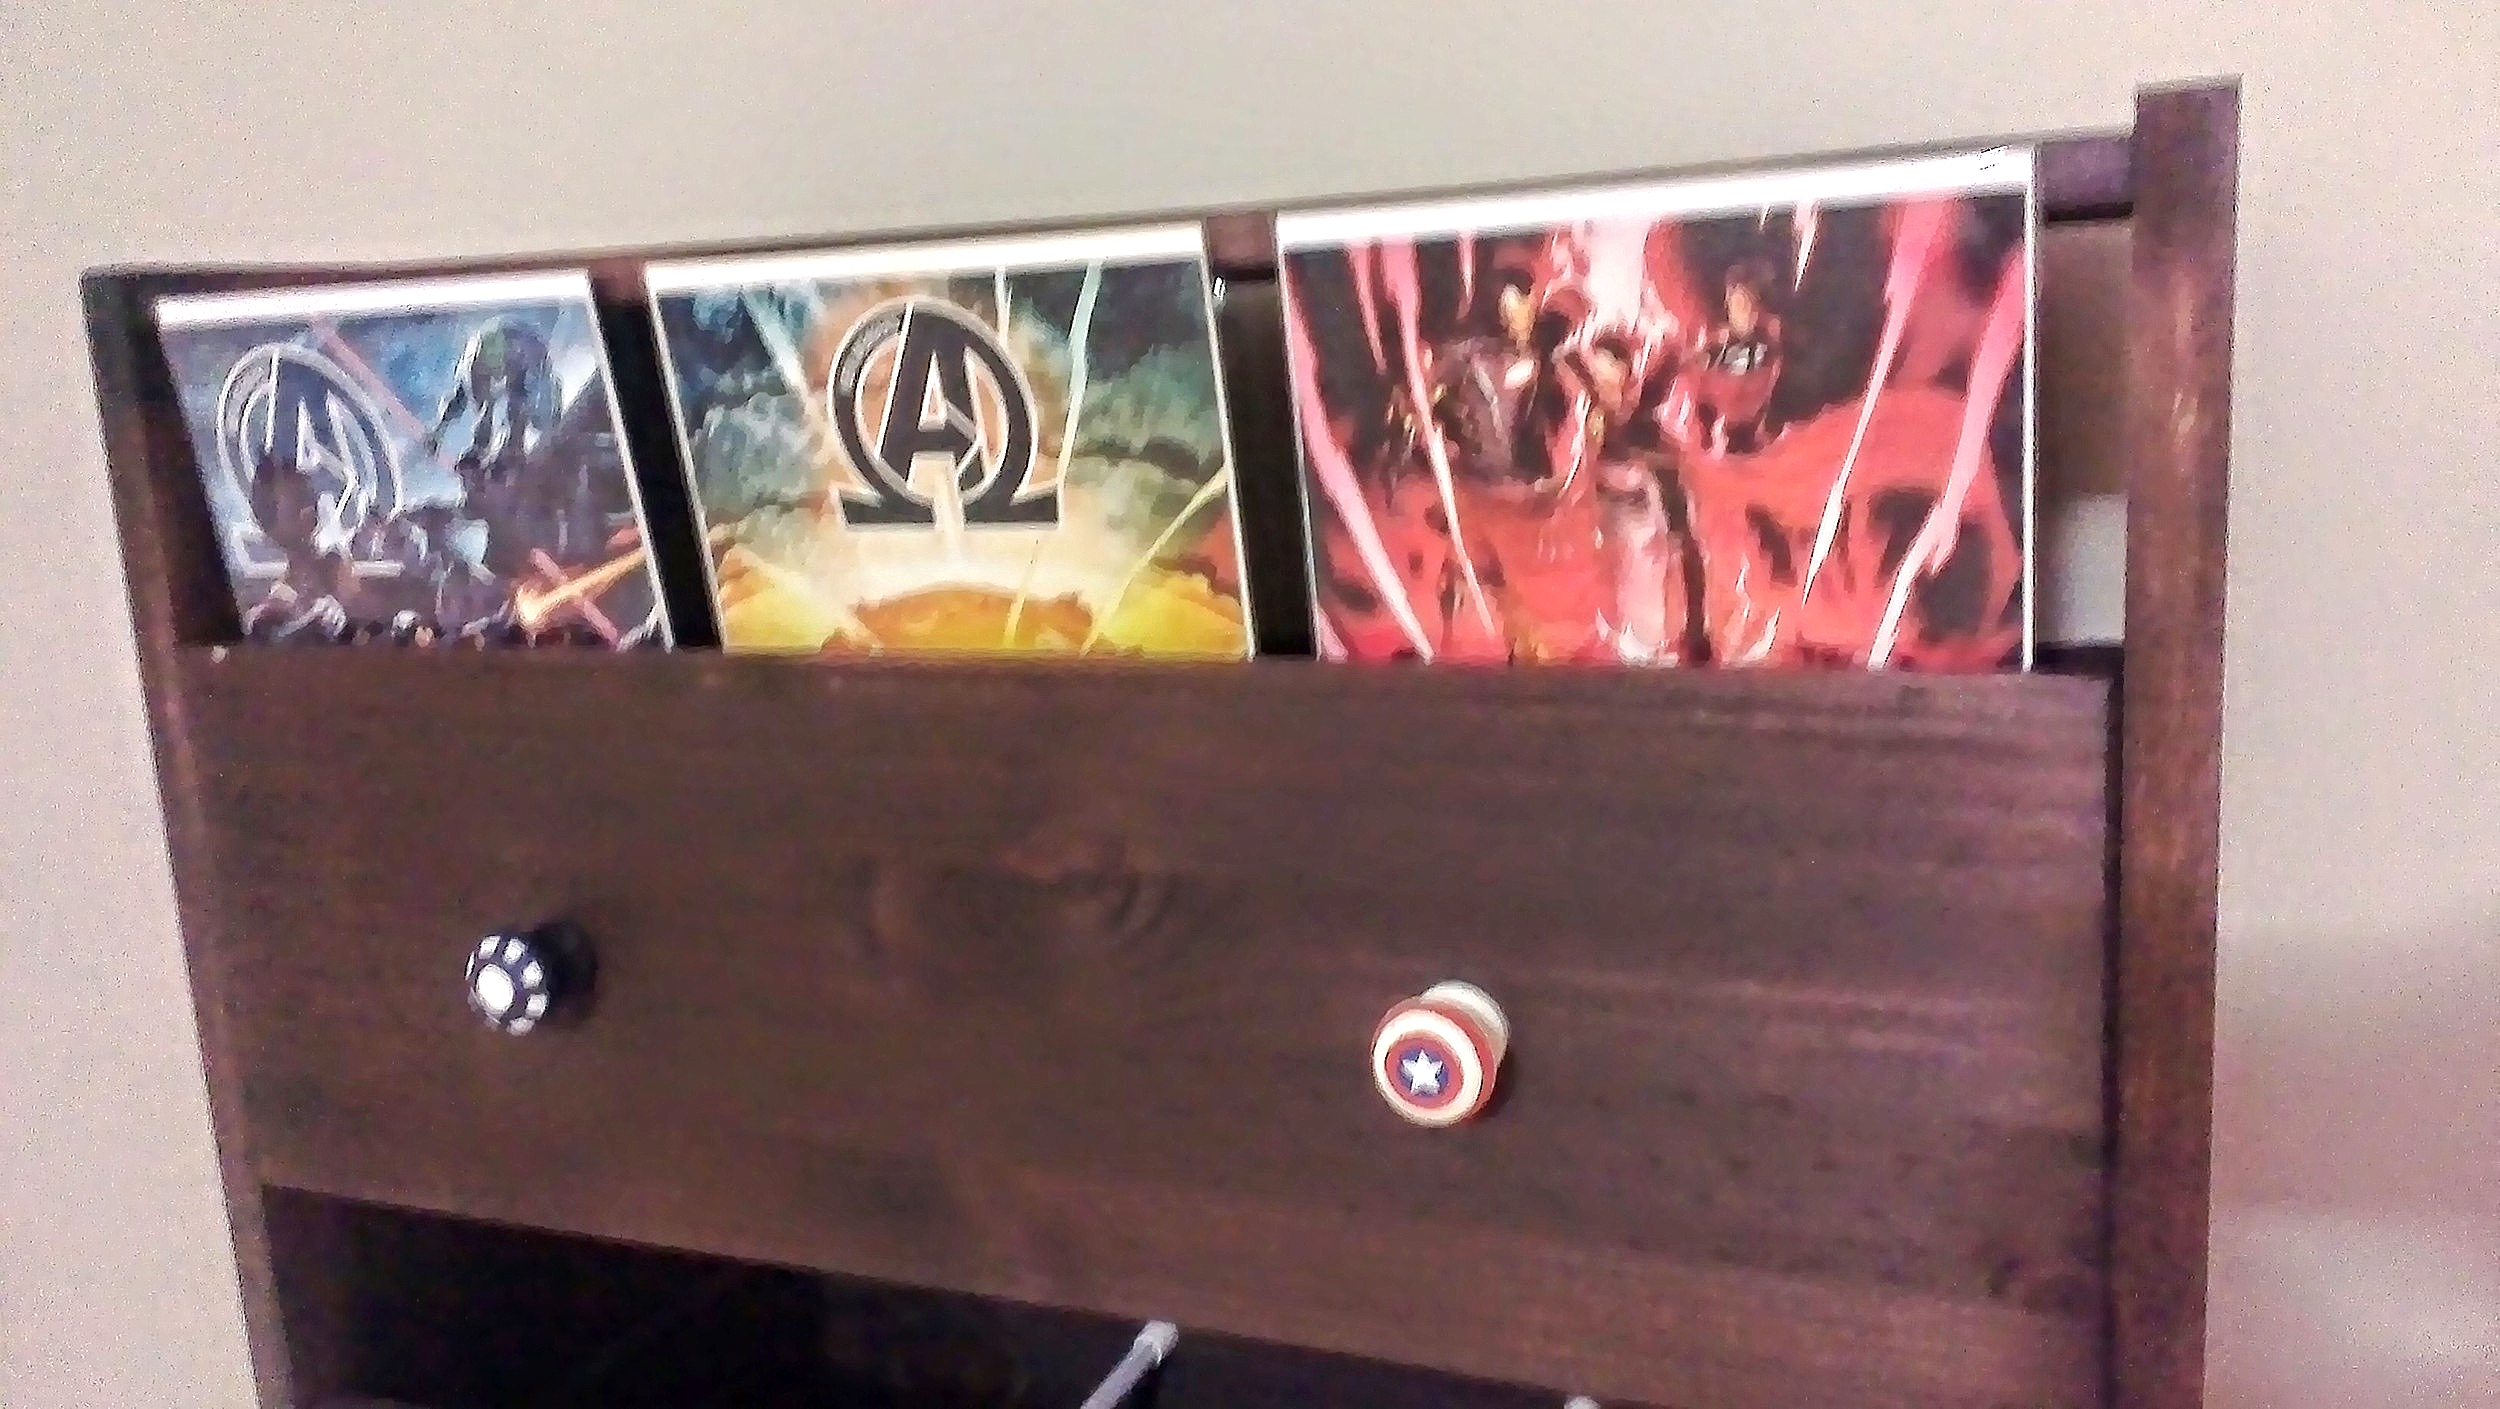 It only seemed appropriate to put Iron Man and Captain America together :)